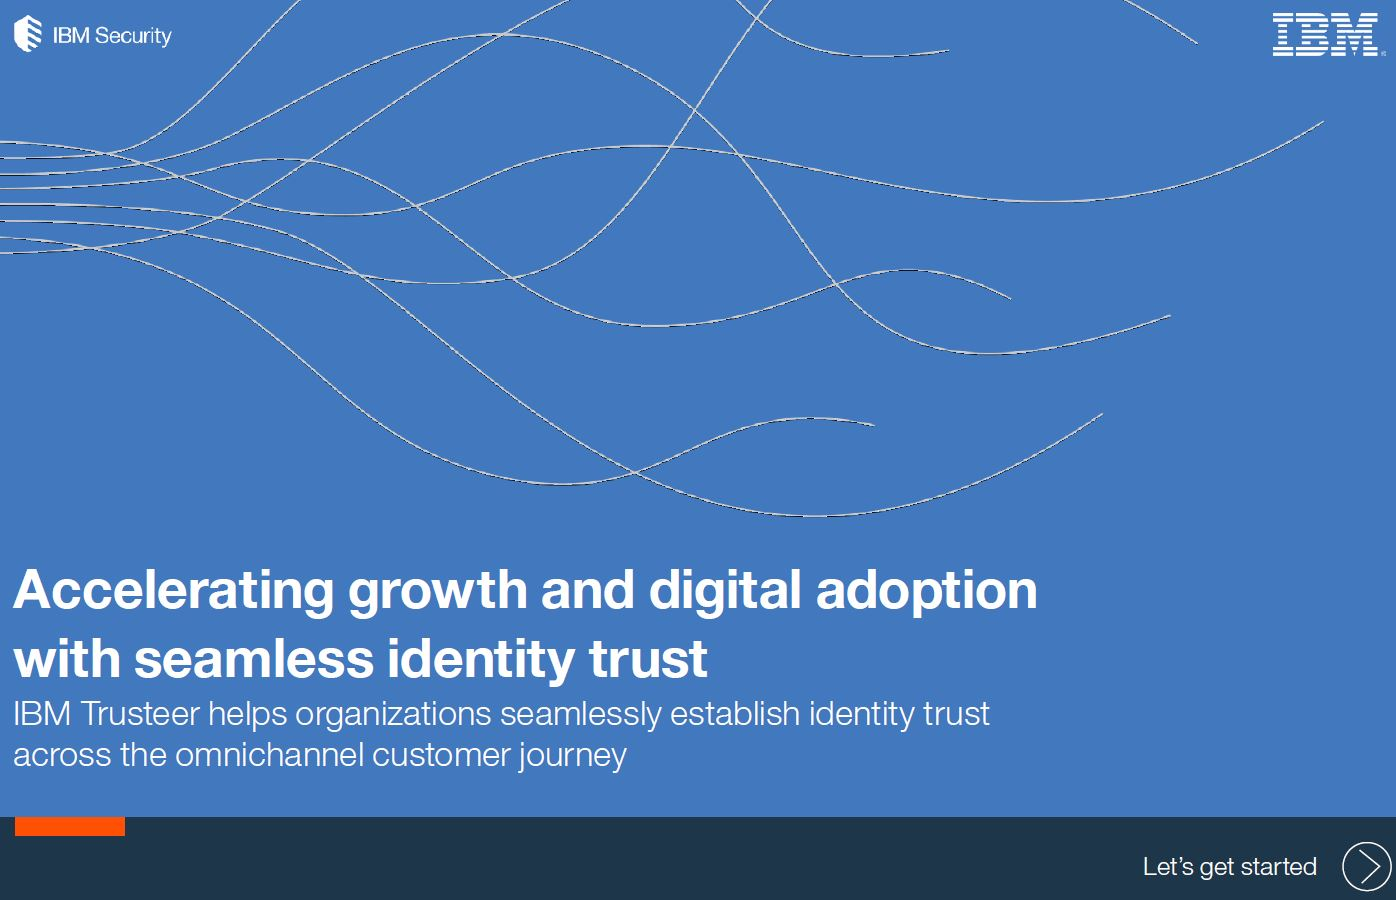 Accelerating Growth and Digital Adoption with Seamless Identity Trust